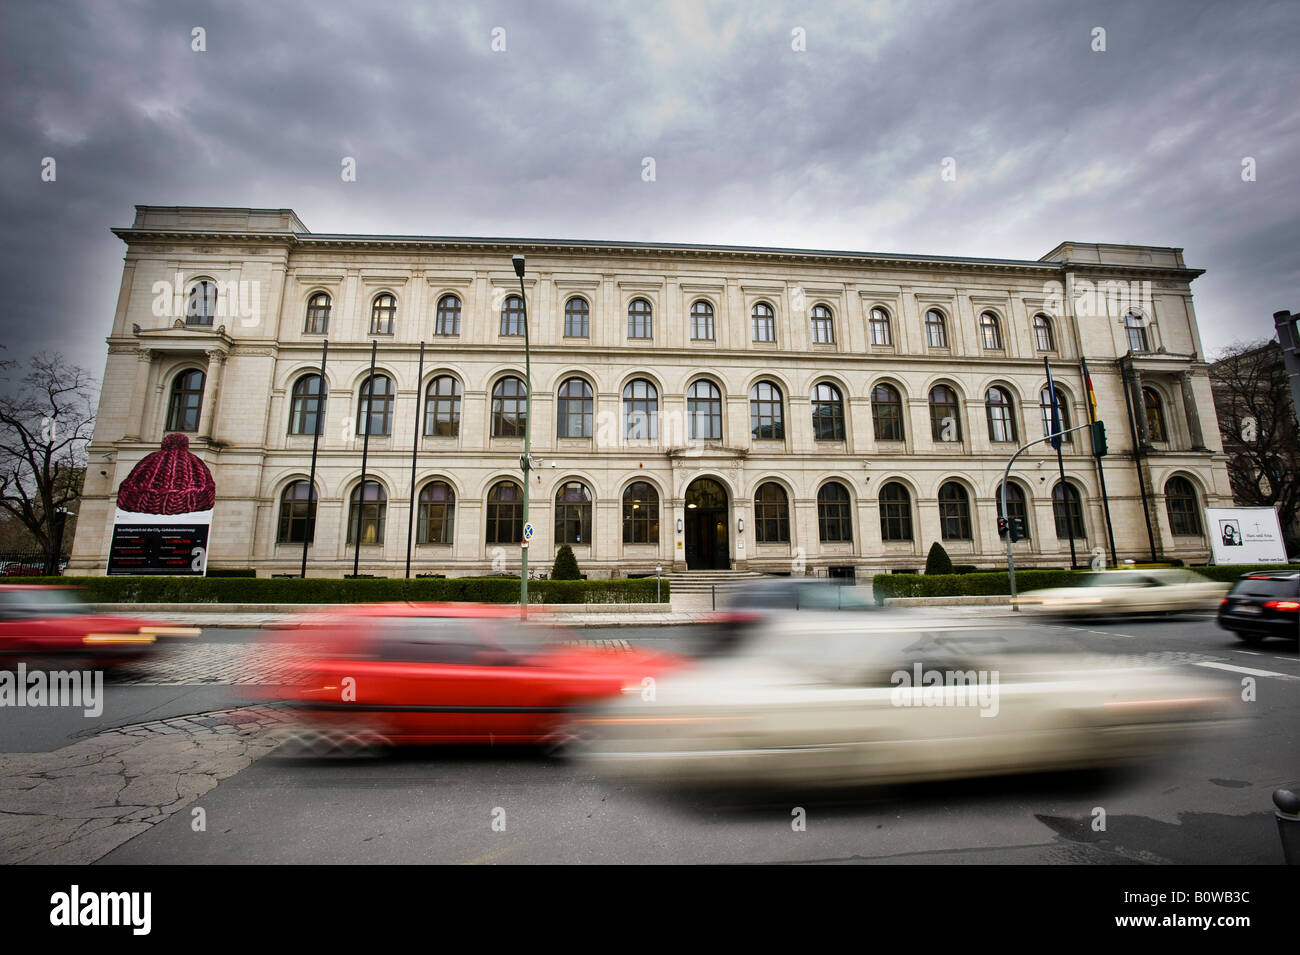 Federal Ministry of Transport, Building and Urban Affairs, Berlin, Germany - Stock Image